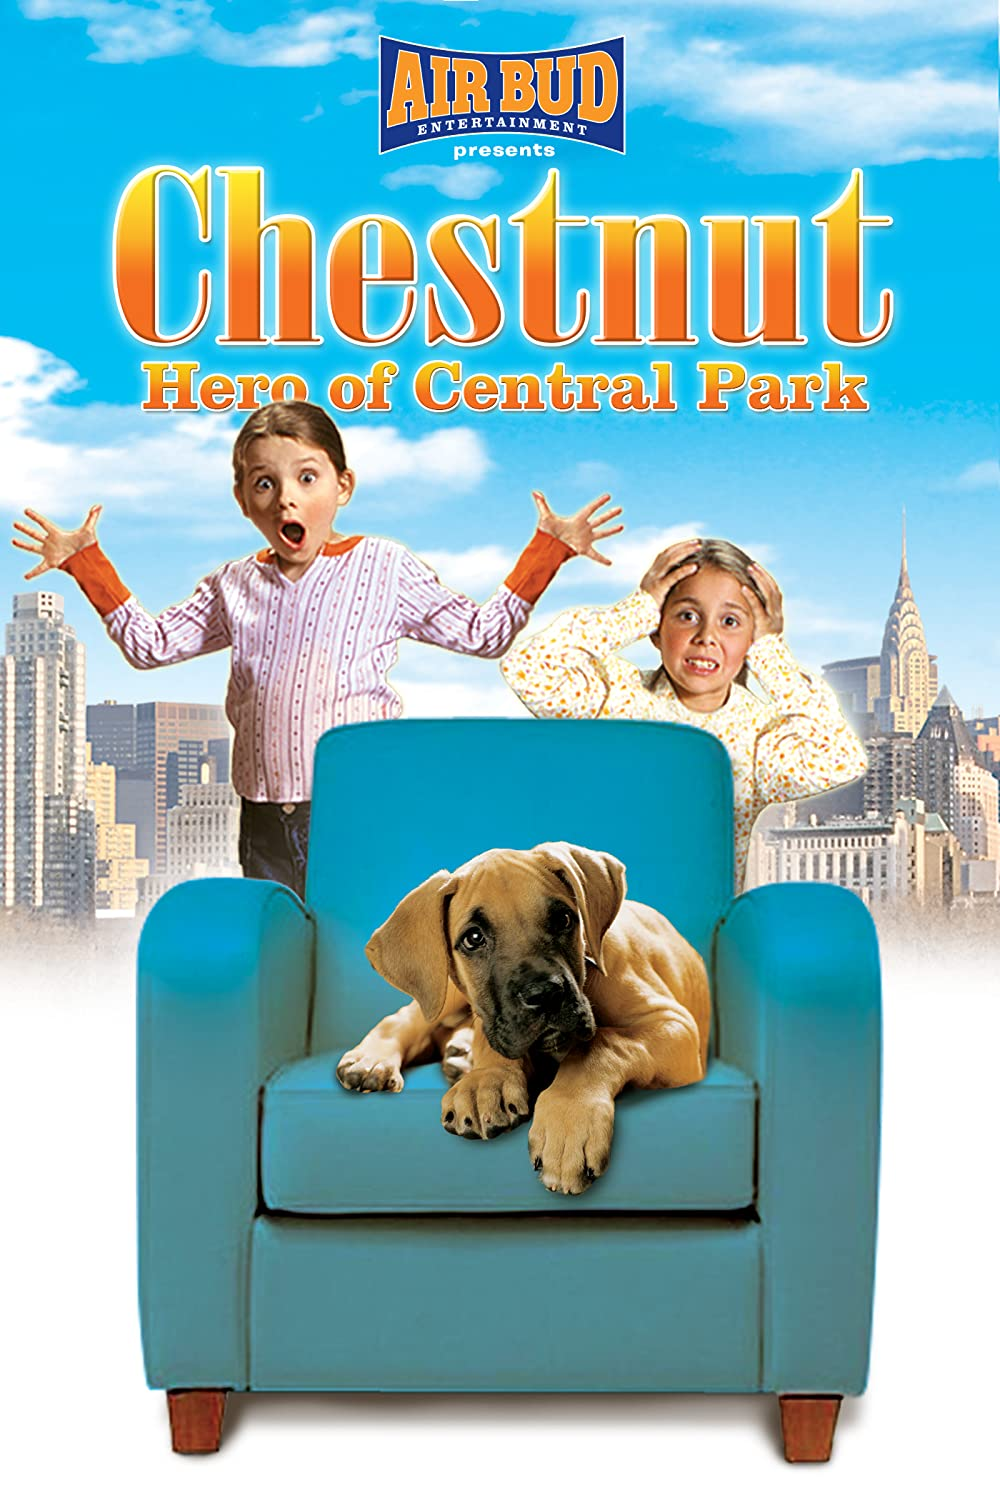 Chestnut: Hero of Central Park 2004 Hindi Dual Audio 720p HDRip ESubs 710MB Download